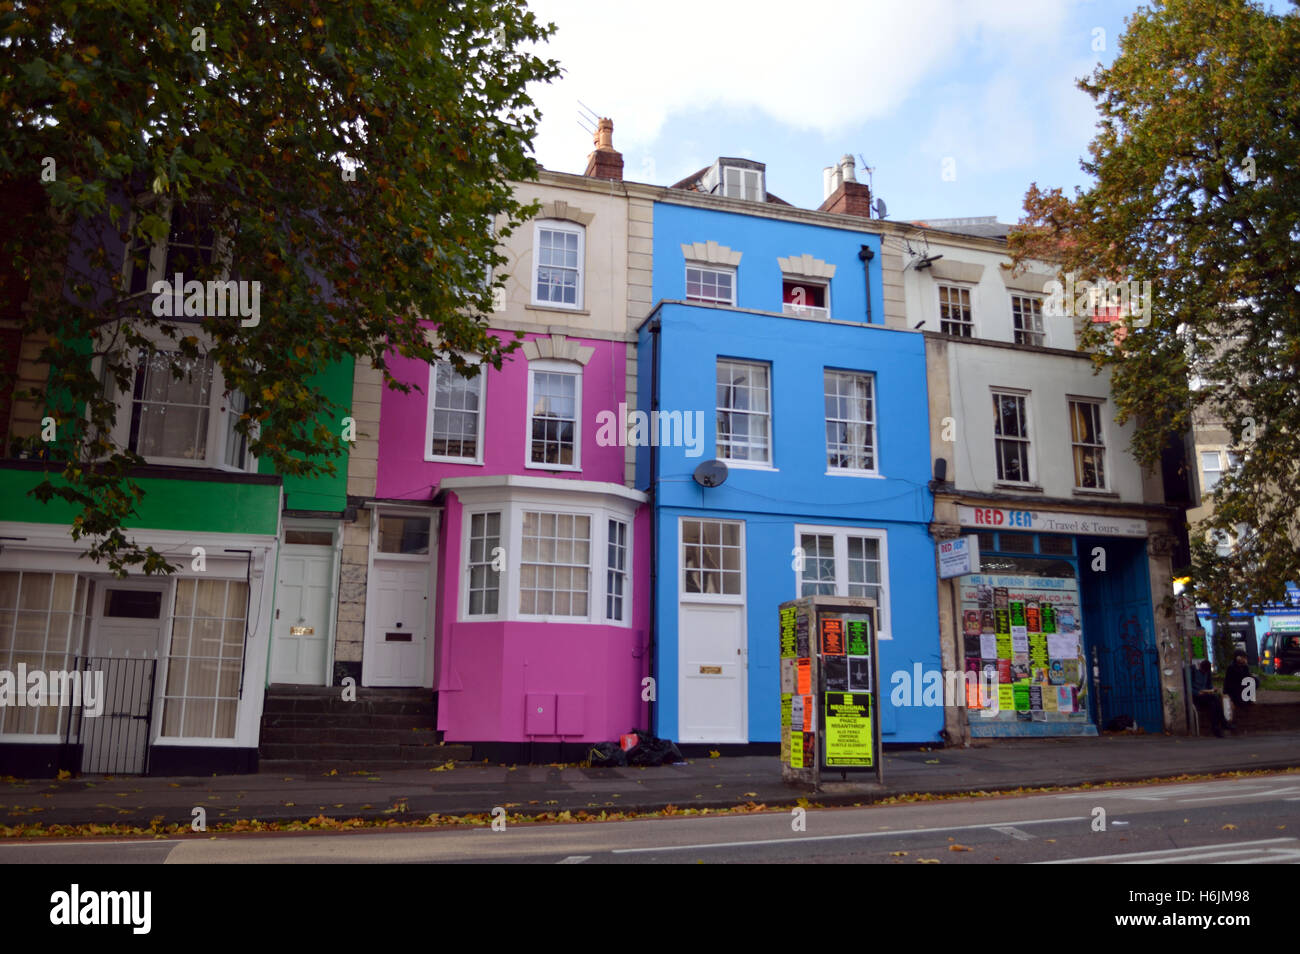 Coloured terraced houses in Gloucester Road in Stokes Croft, Bristol. - Stock Image